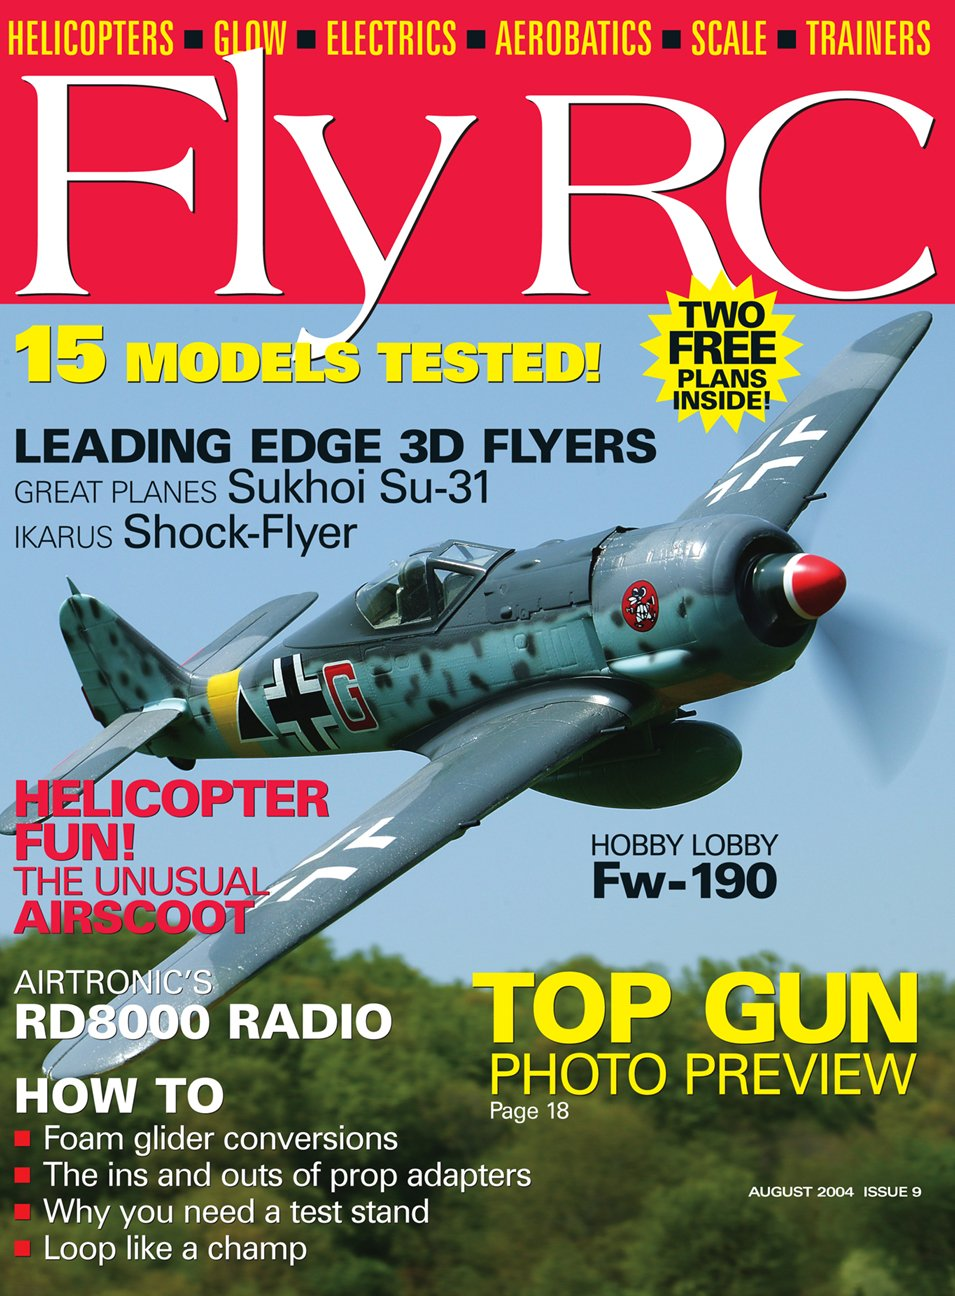 Fly RC Magazine -- August 2004 (Issue #9): Various: Amazon